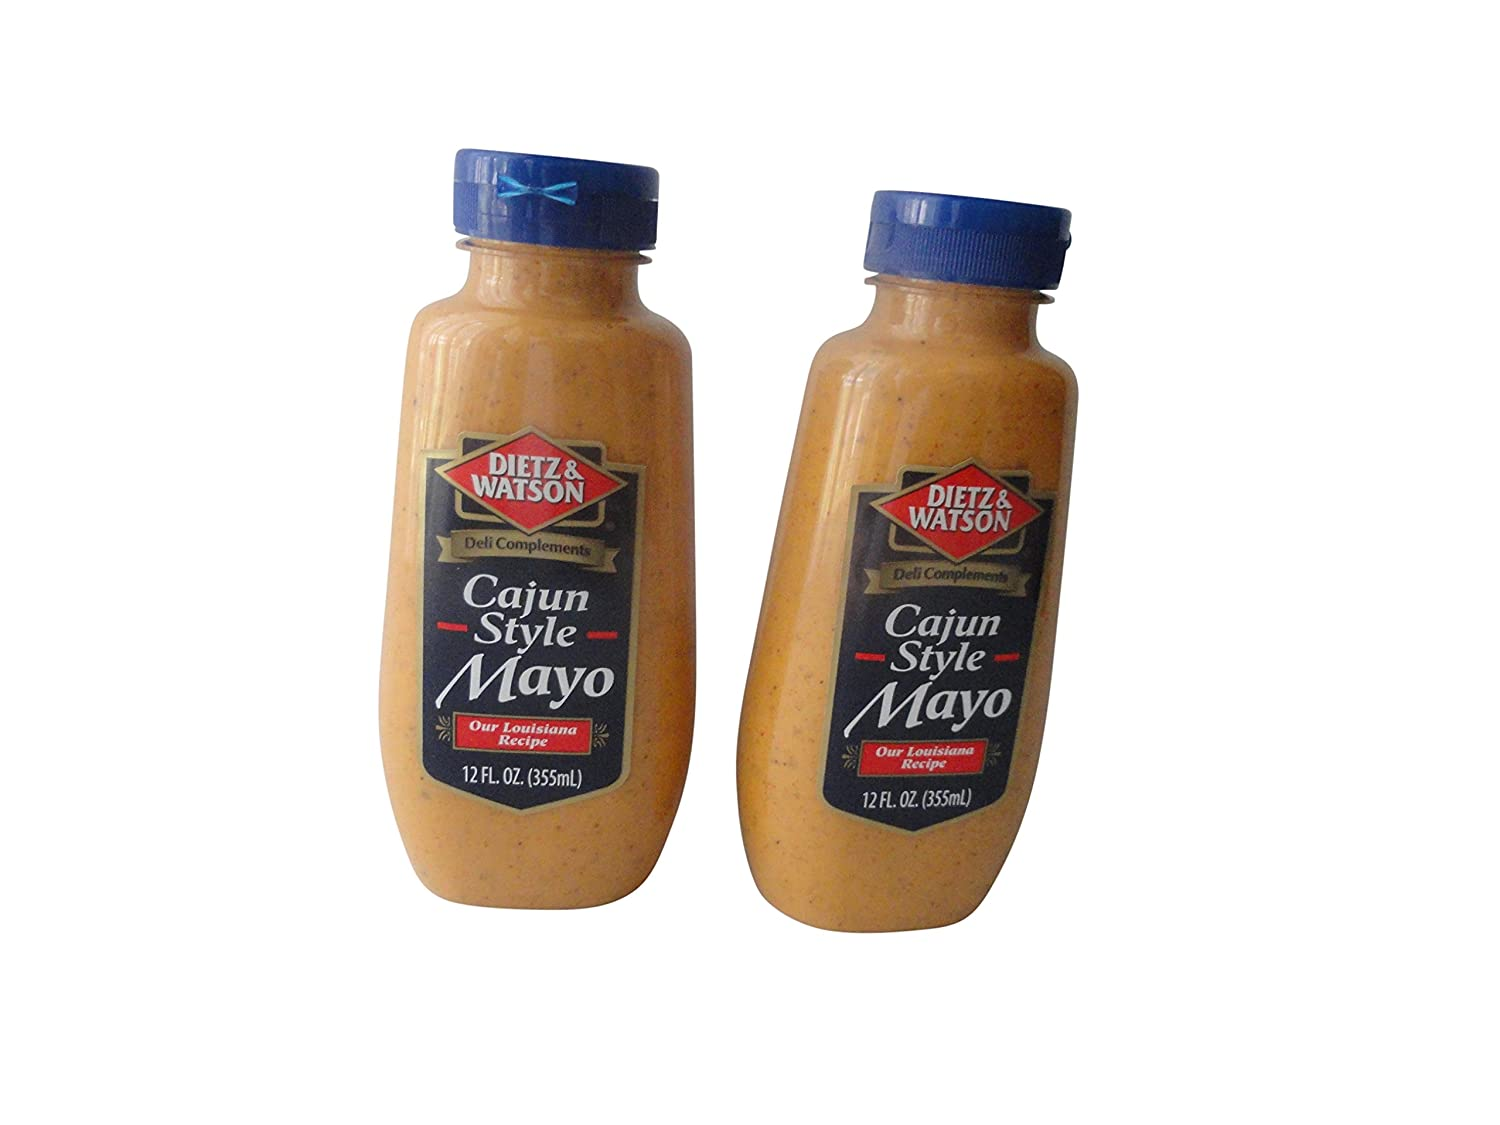 Dietz Watson Deli Complements Cajun Style 12 Regular discount Mayo bottl 2 Outlet ☆ Free Shipping oz -